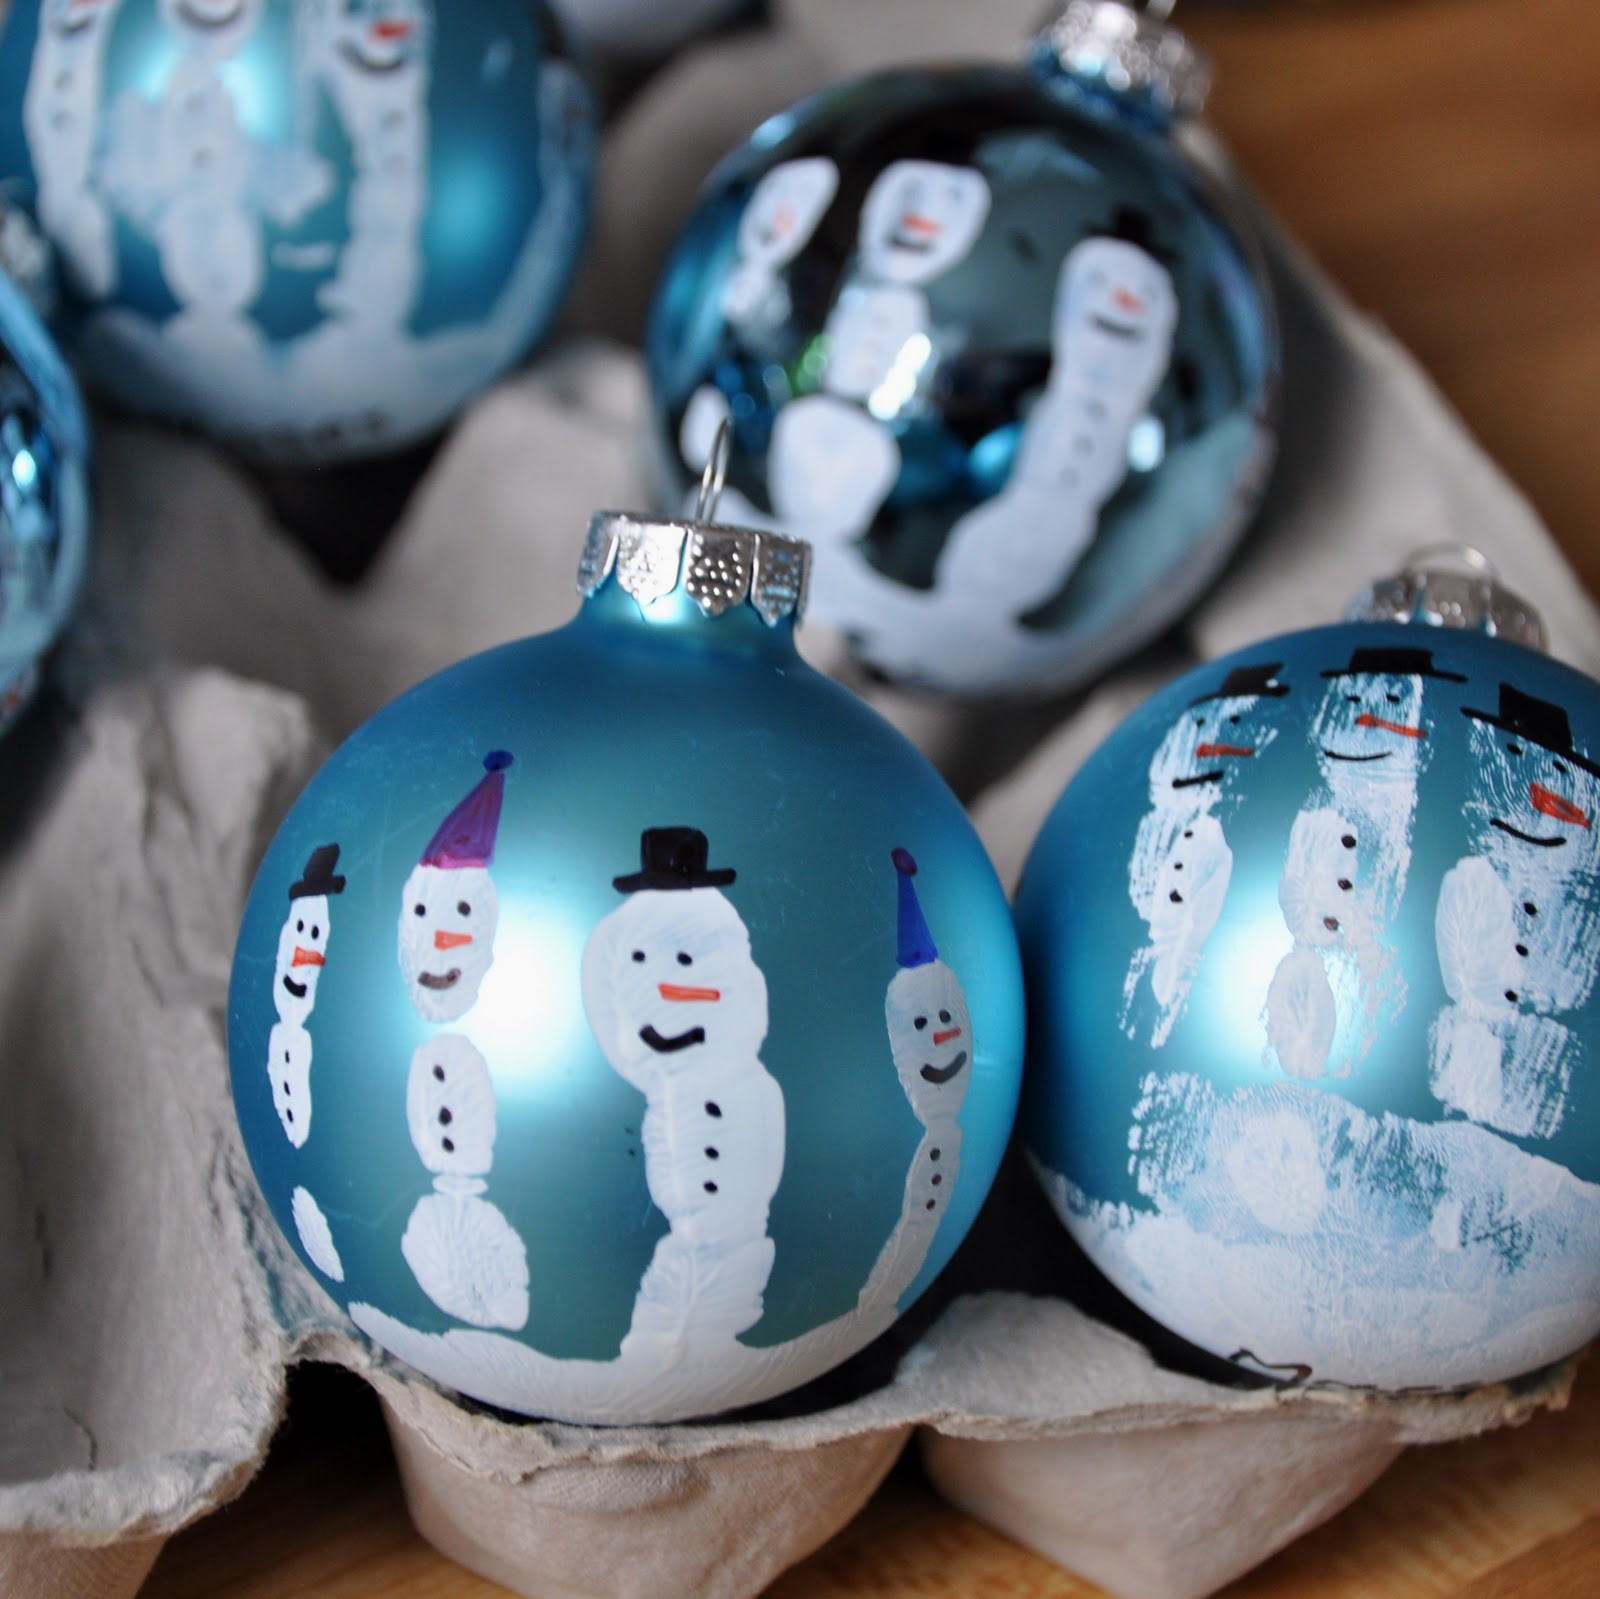 Best Of Little Bit Funky Make these now Handprint Snowman Snowman Christmas ornaments Of Adorable 45 Models Snowman Christmas ornaments